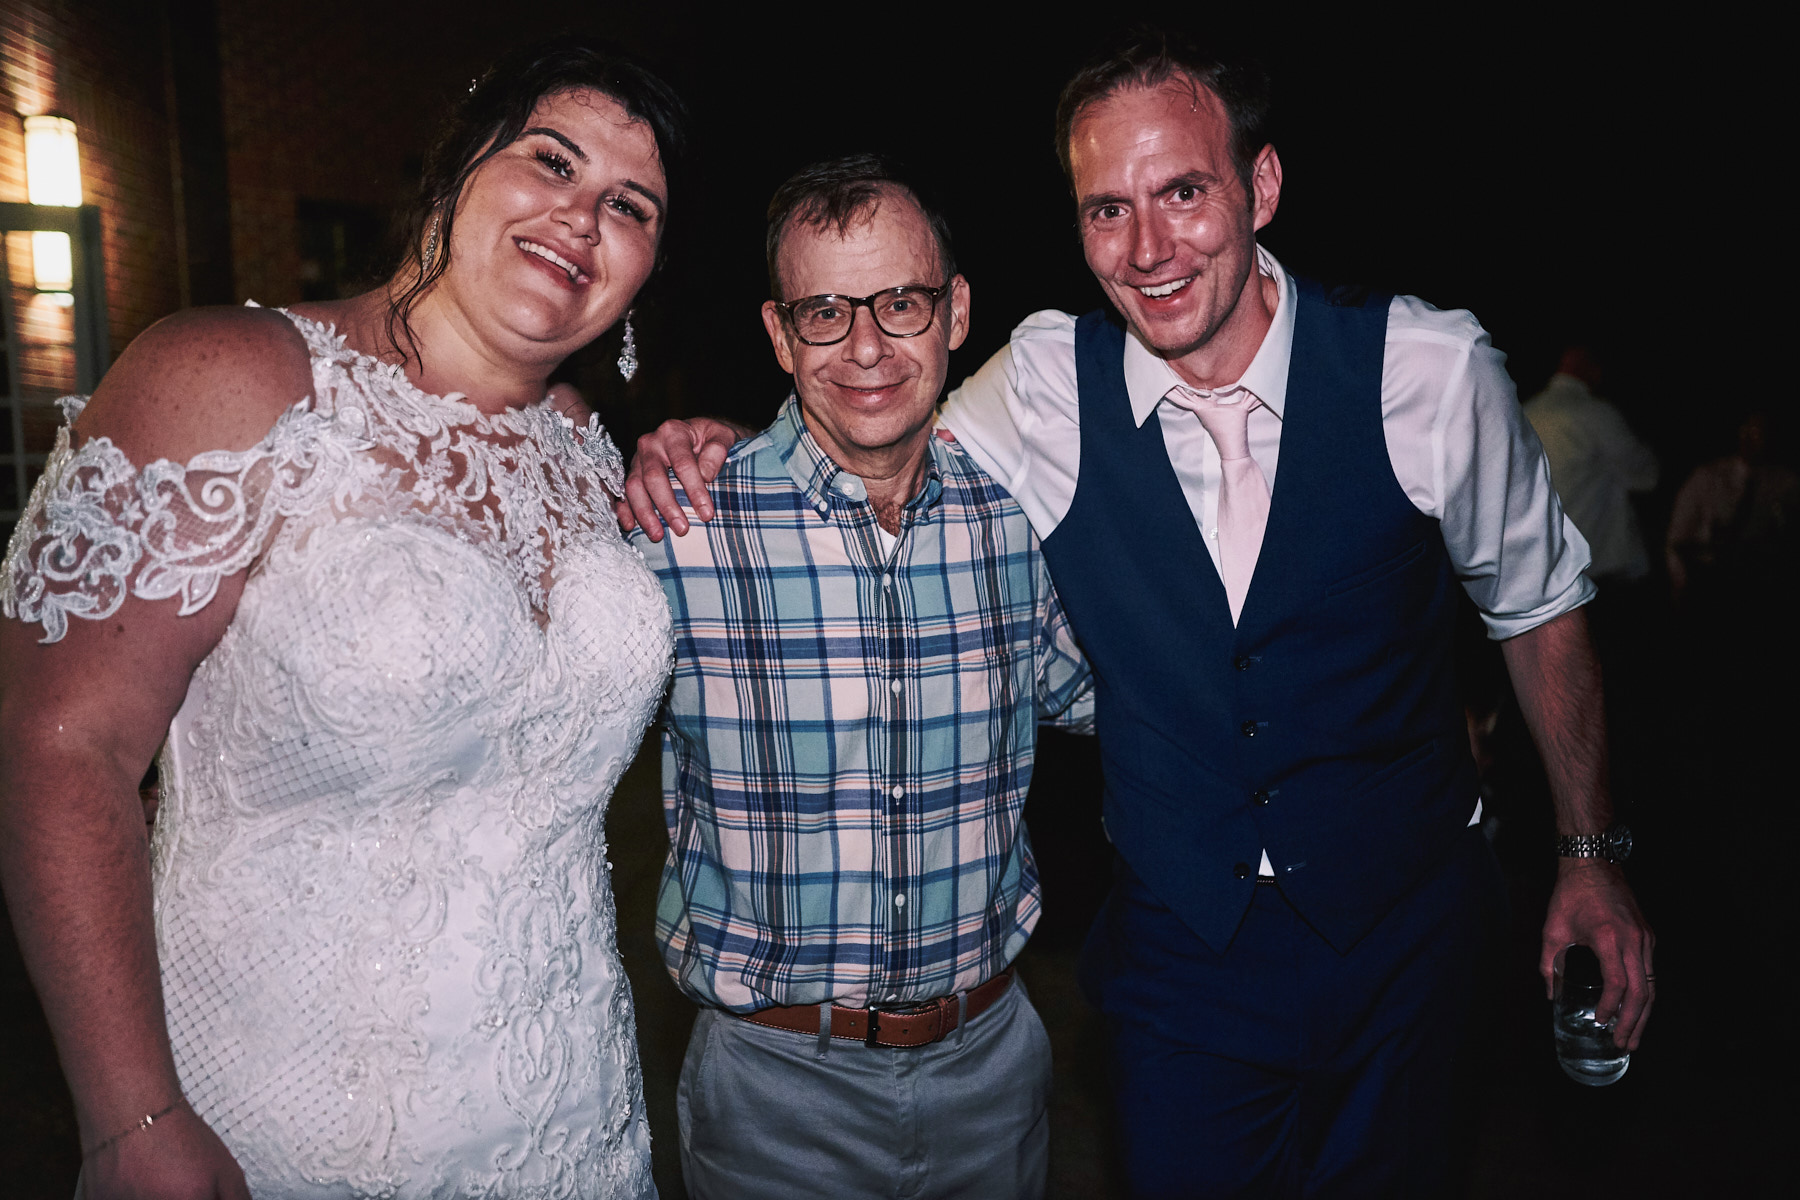 Rick Moranis at a wedding